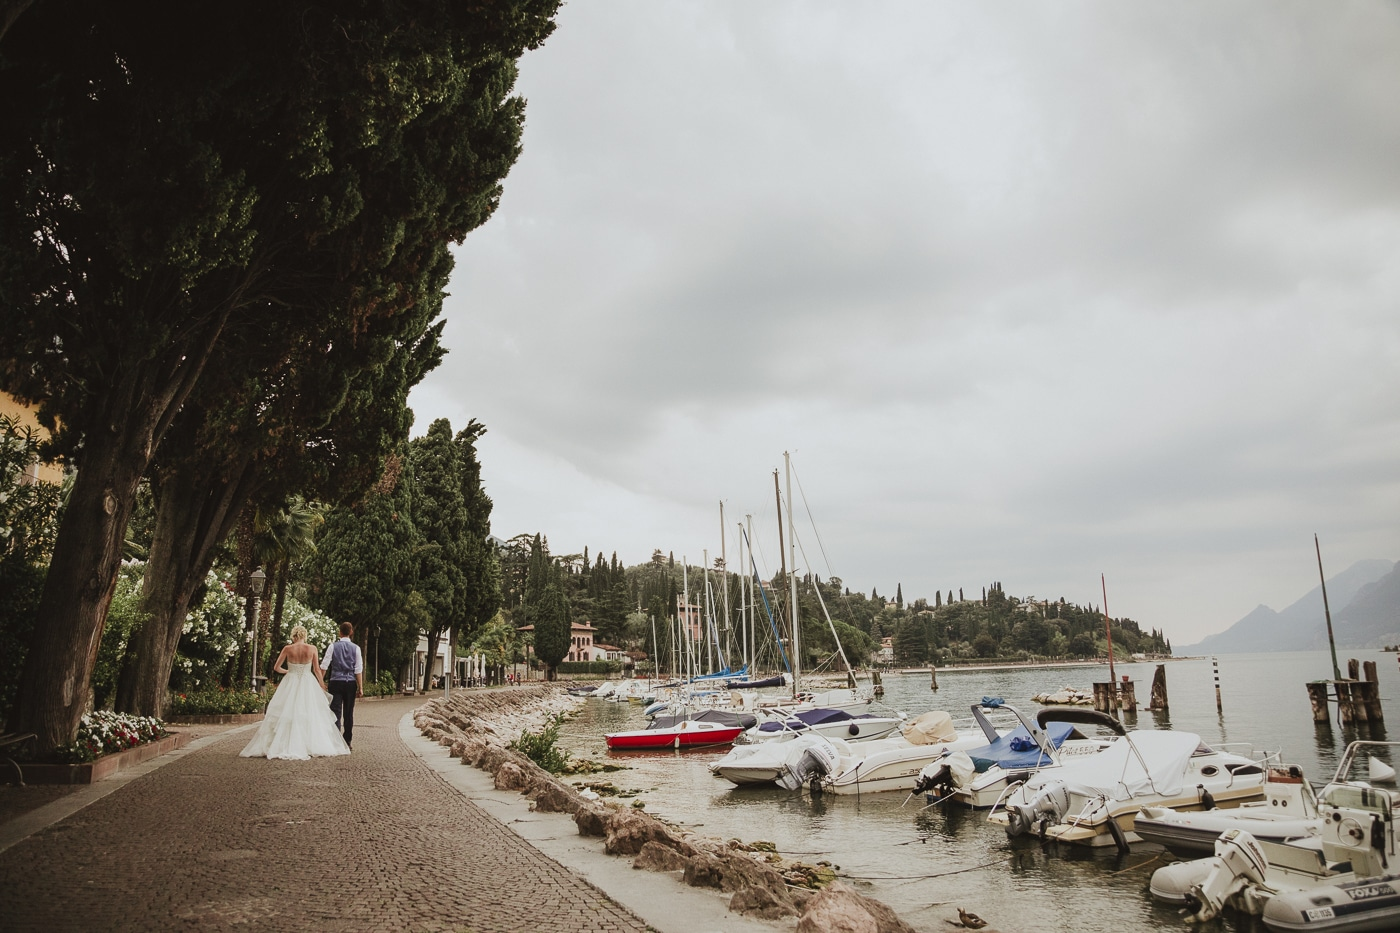 Bride and Groom walking along tree lined pathway next to a marina of boats in Lake Garda Italy with mountains in the background